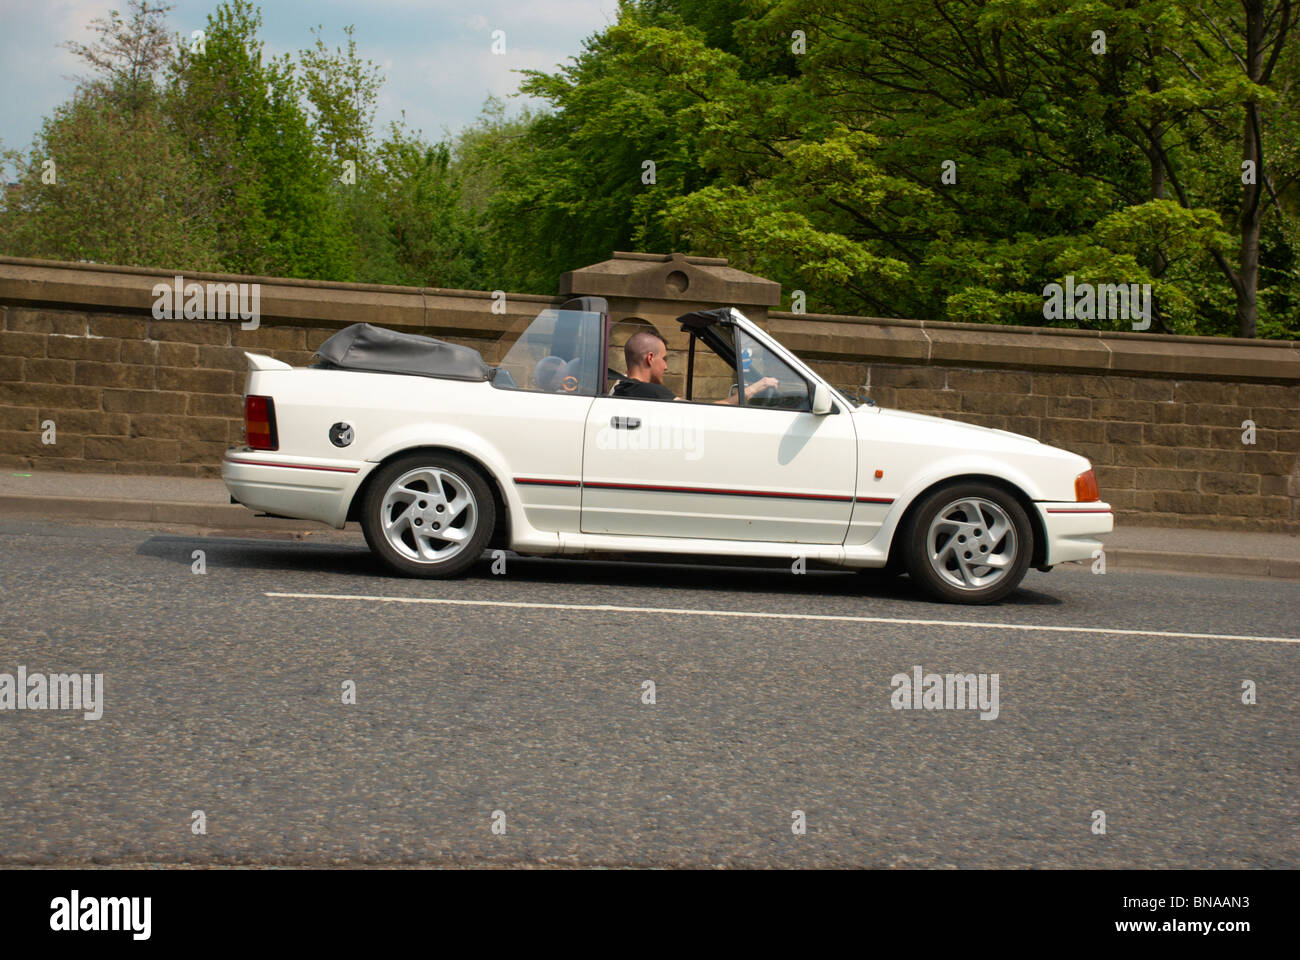 1980s Ford Escort High Resolution Stock Photography And Images Alamy